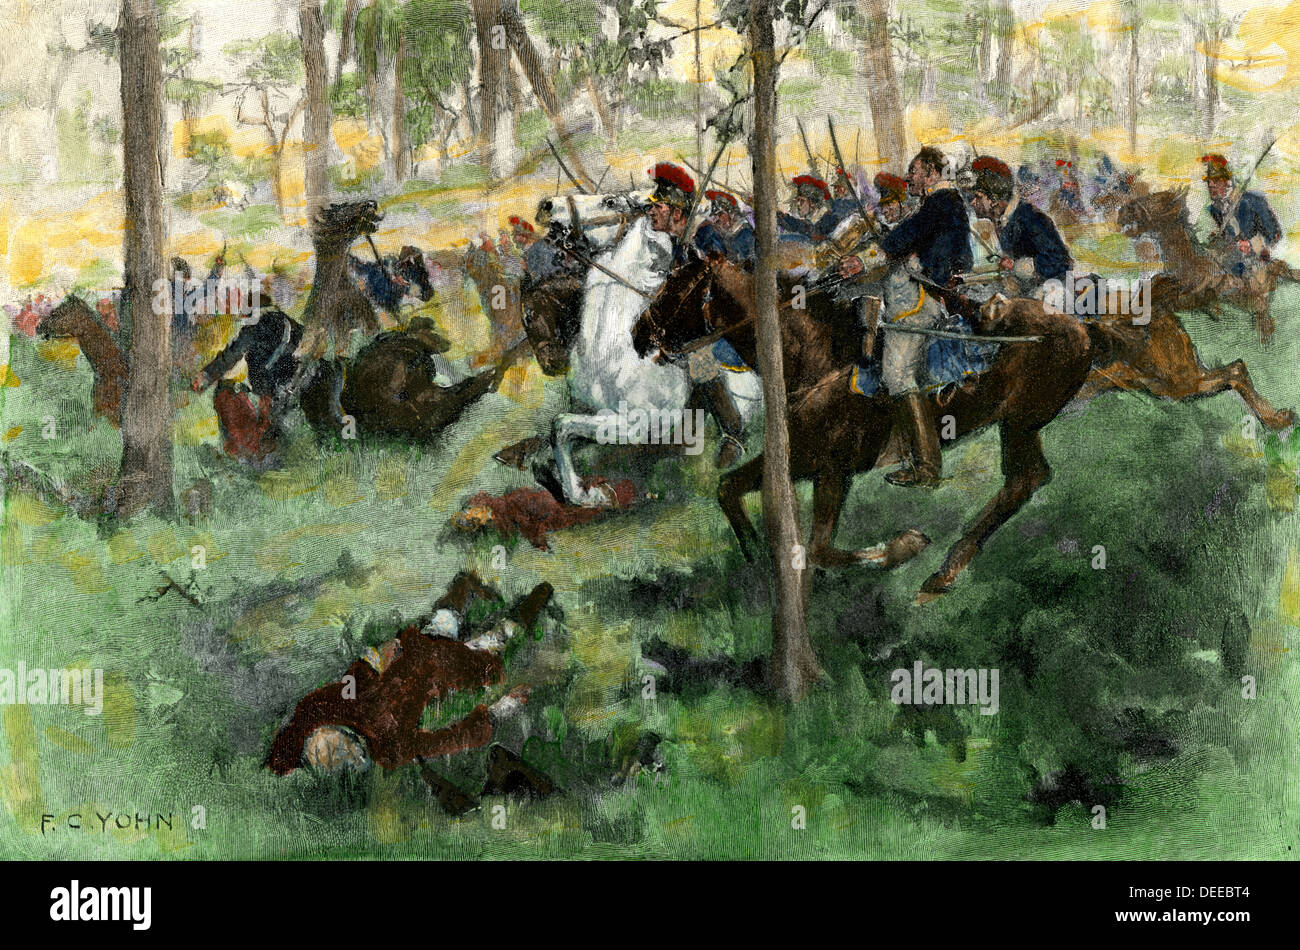 American cavalry charge covering retreat at the Battle of Hobkirk's Hill, Revolutionary War, 1781. Hand-colored halftone of an F.C. Yohn illustration - Stock Image